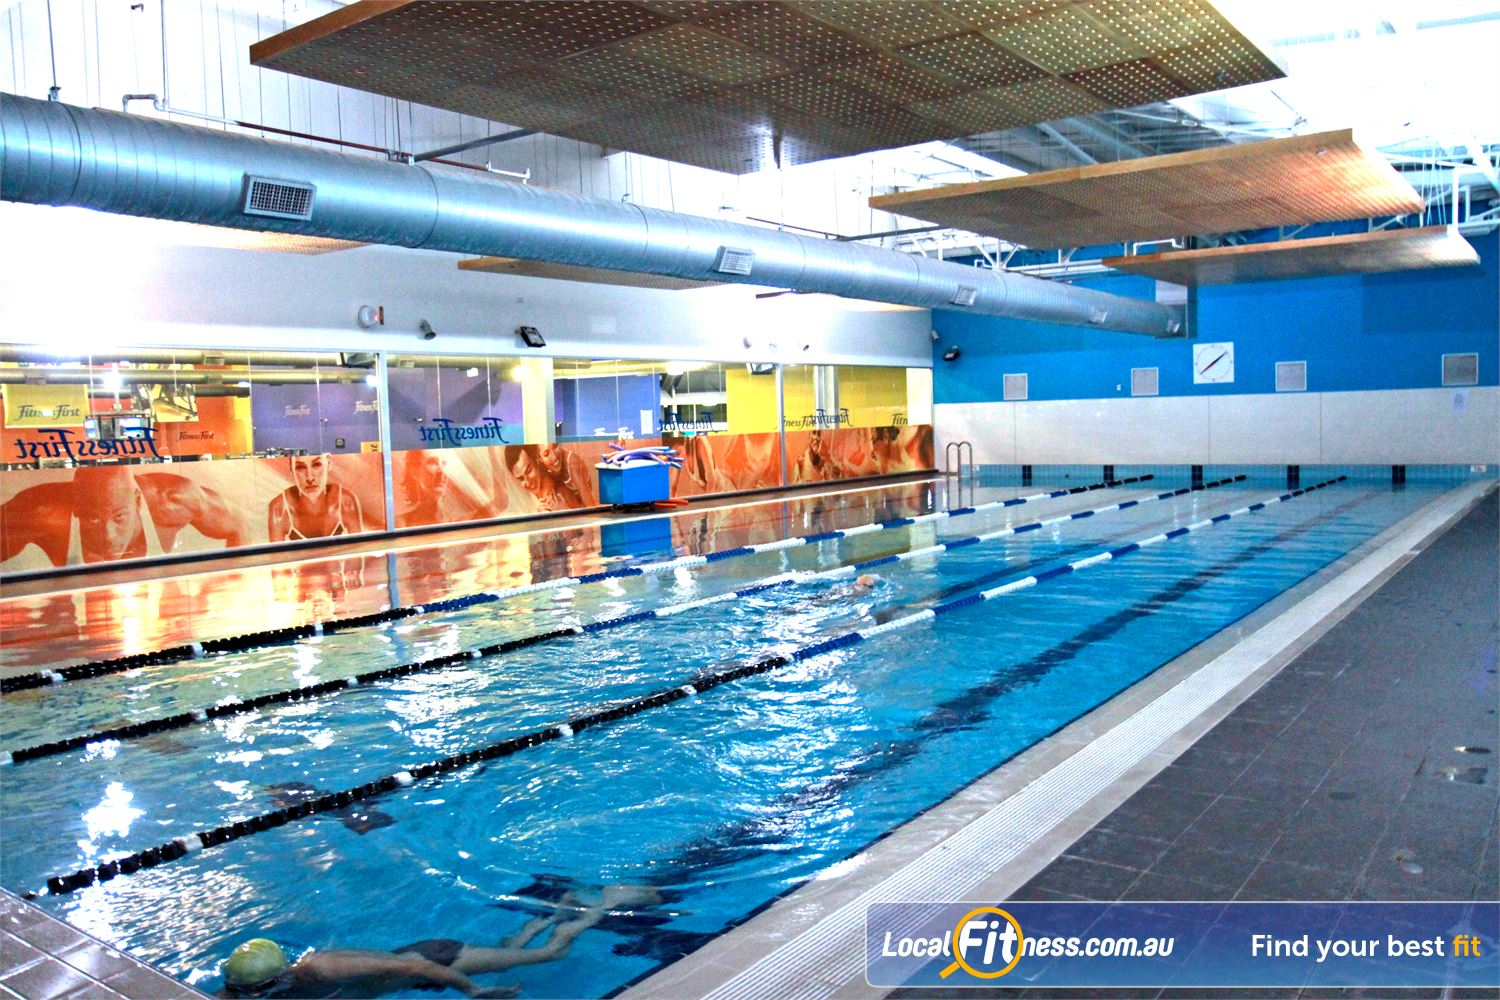 Fitness first swimming pool near monterey the 50m indoor - Fitness first gyms with swimming pools ...